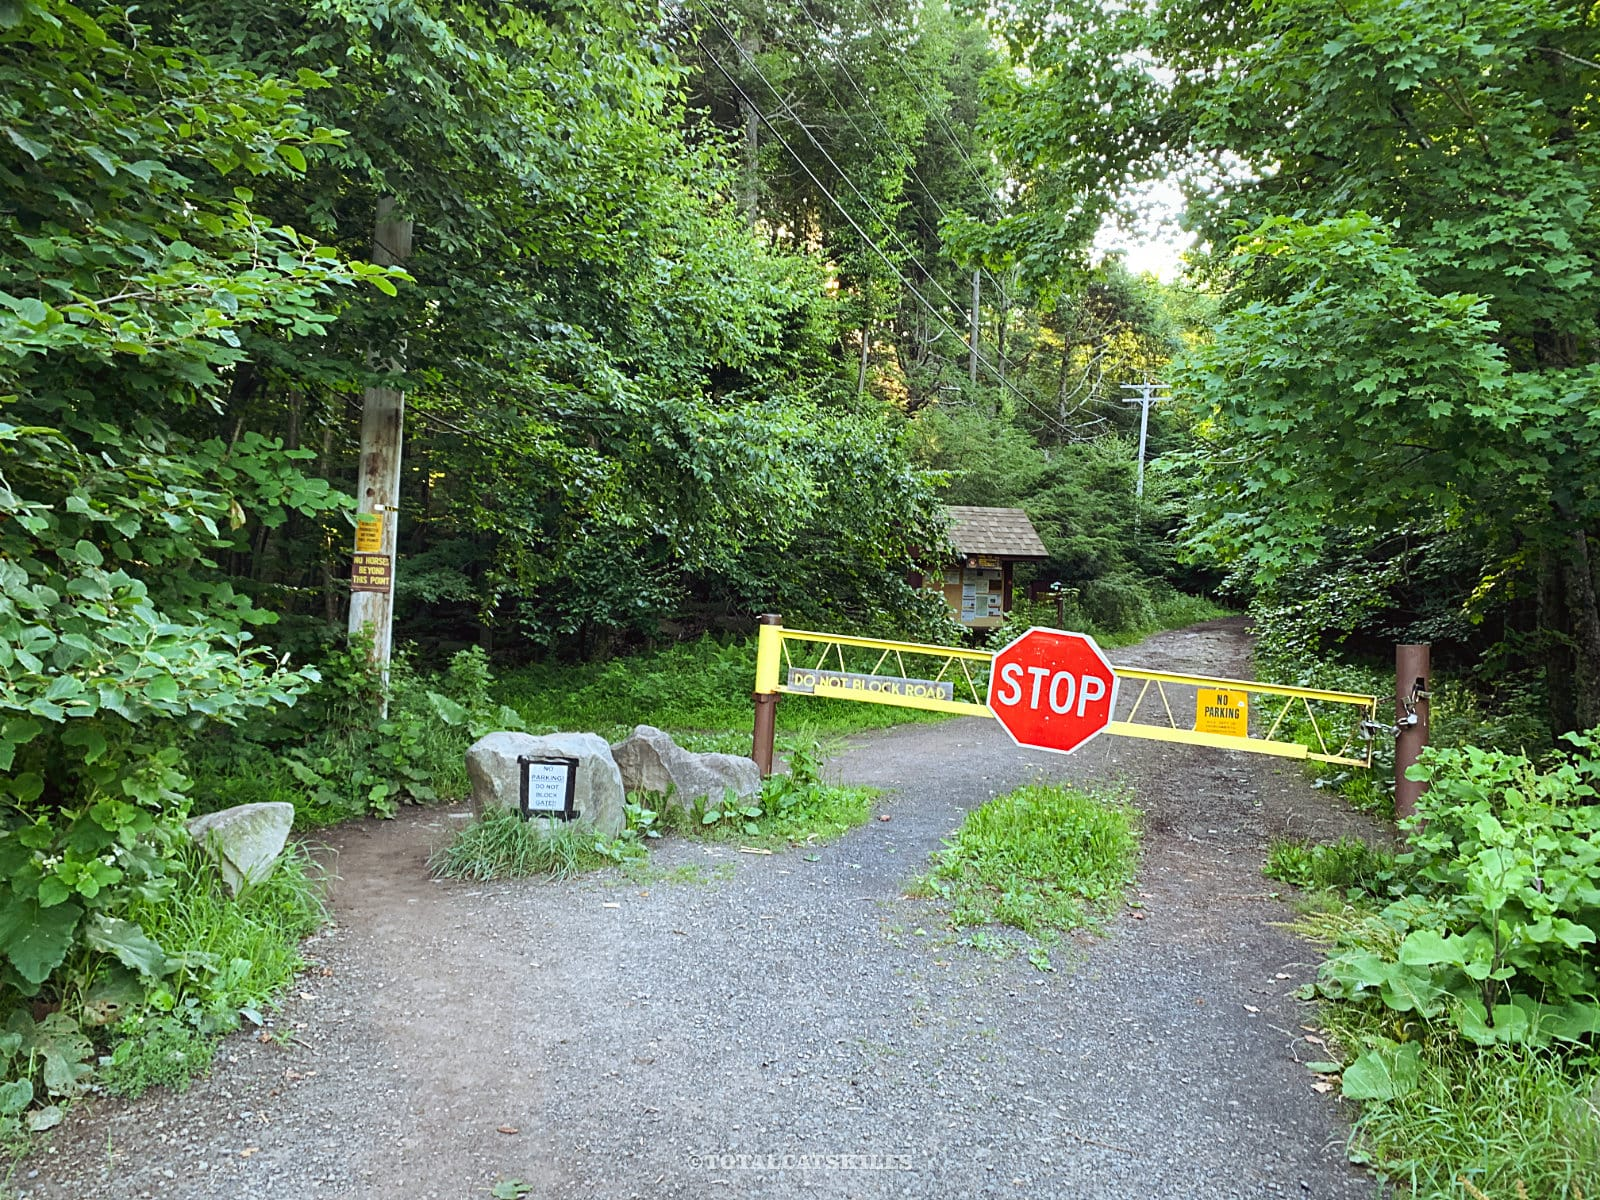 overlook mountain trail: yellow gate with stop sign